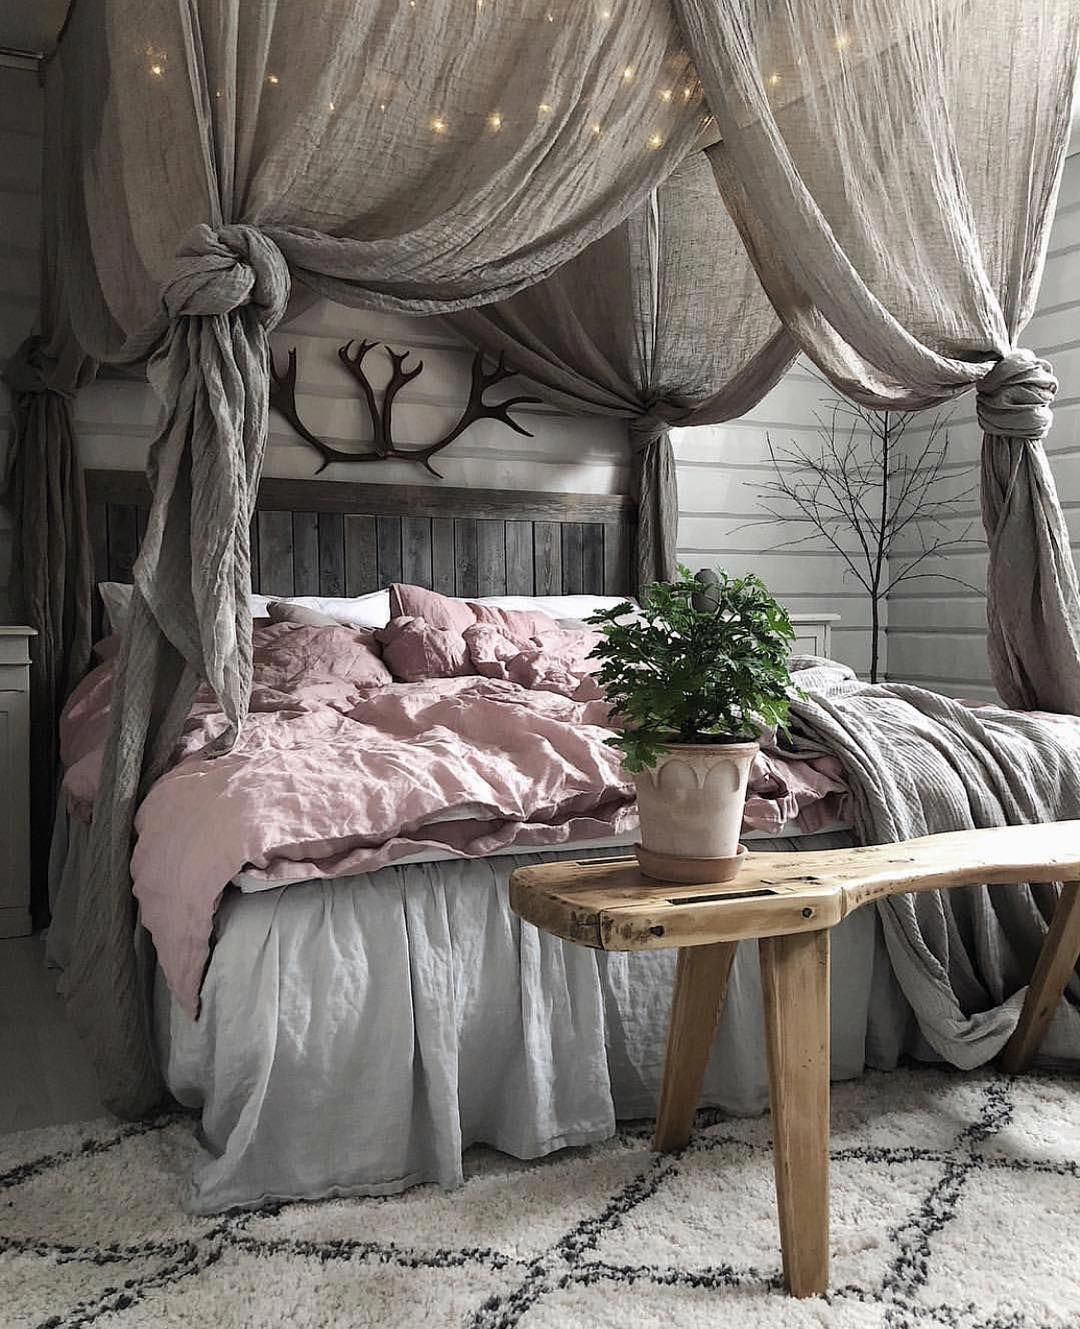 Cosy Bedroom Ideas For A Restful Retreat: Charming Bedrooms That You Just Can't Encourage But Love